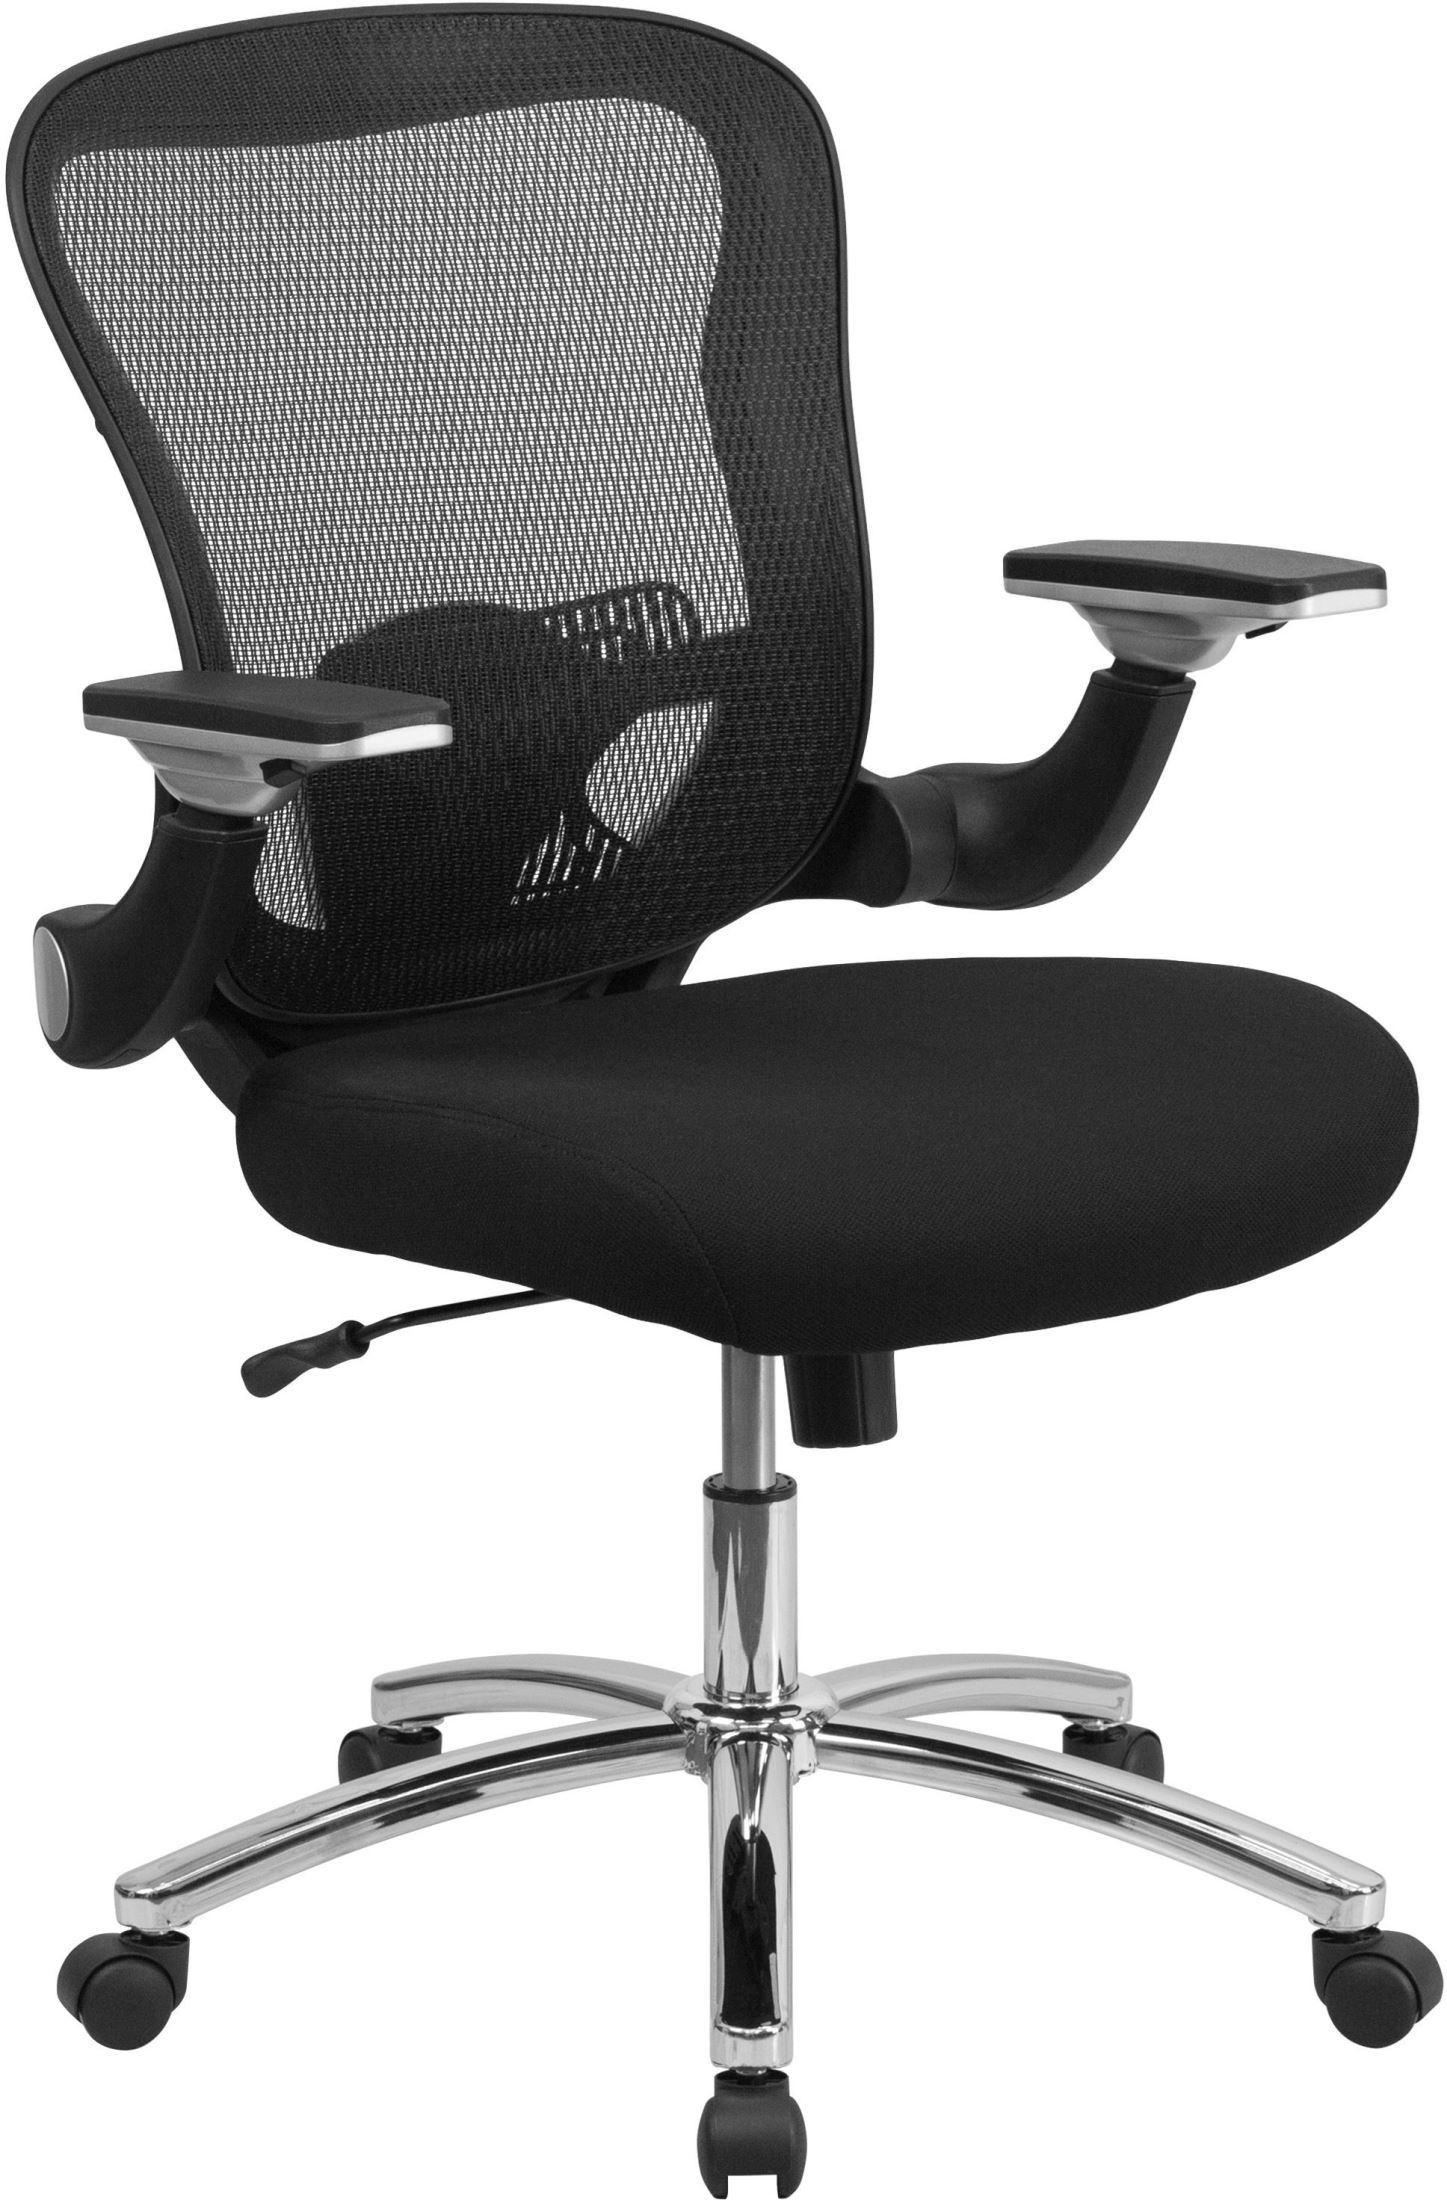 coleman lumbar quattro chair colourful office chairs mid back black executive padded seat swivel